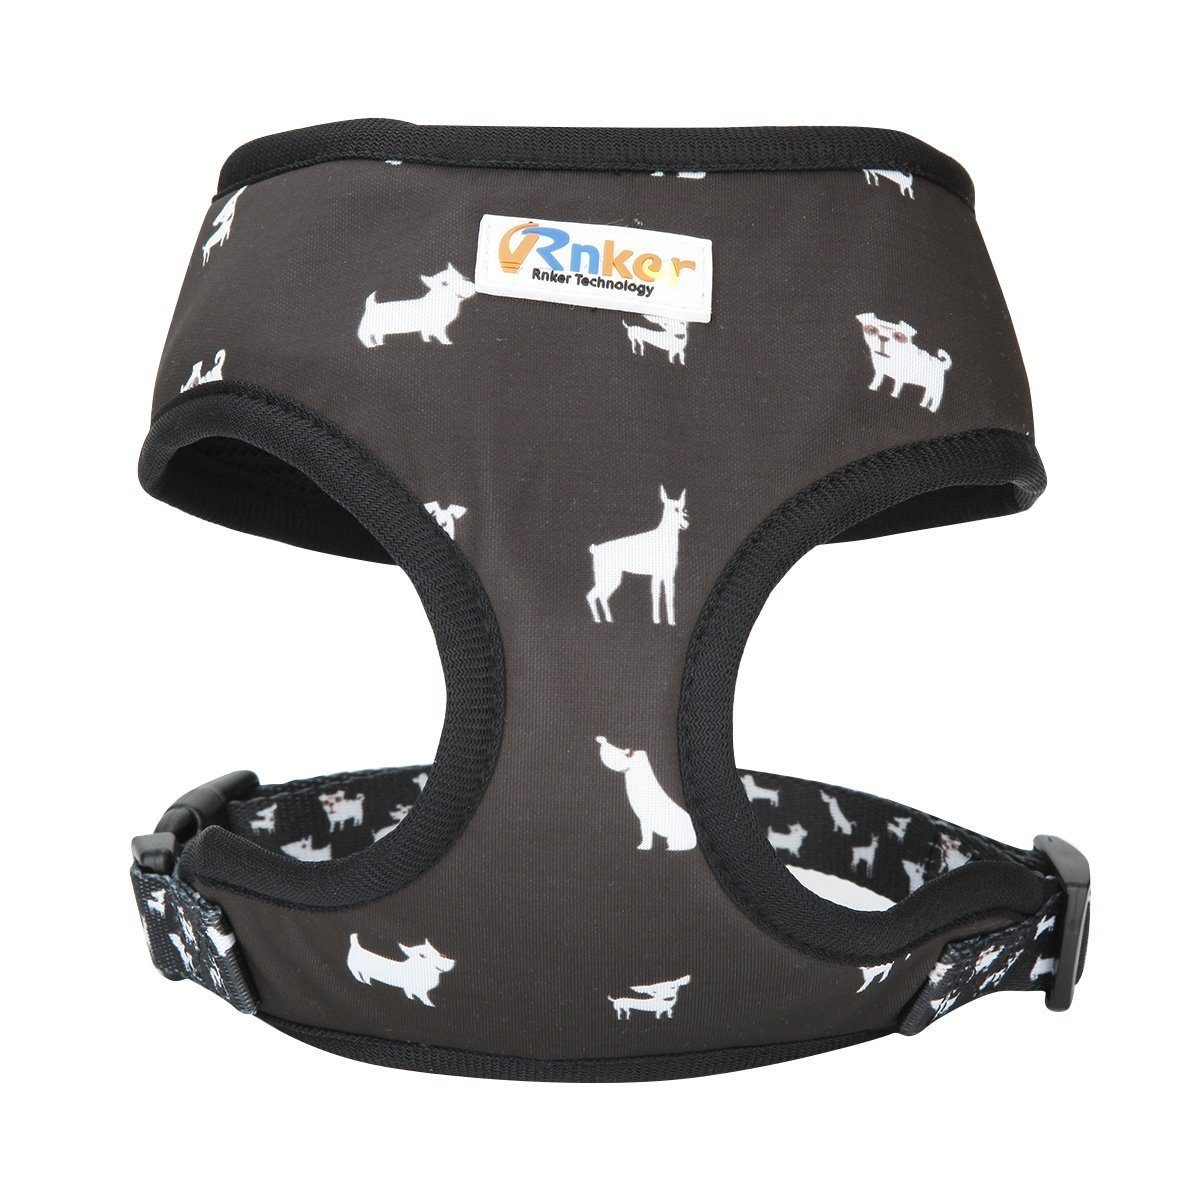 Rnker Dog Harness